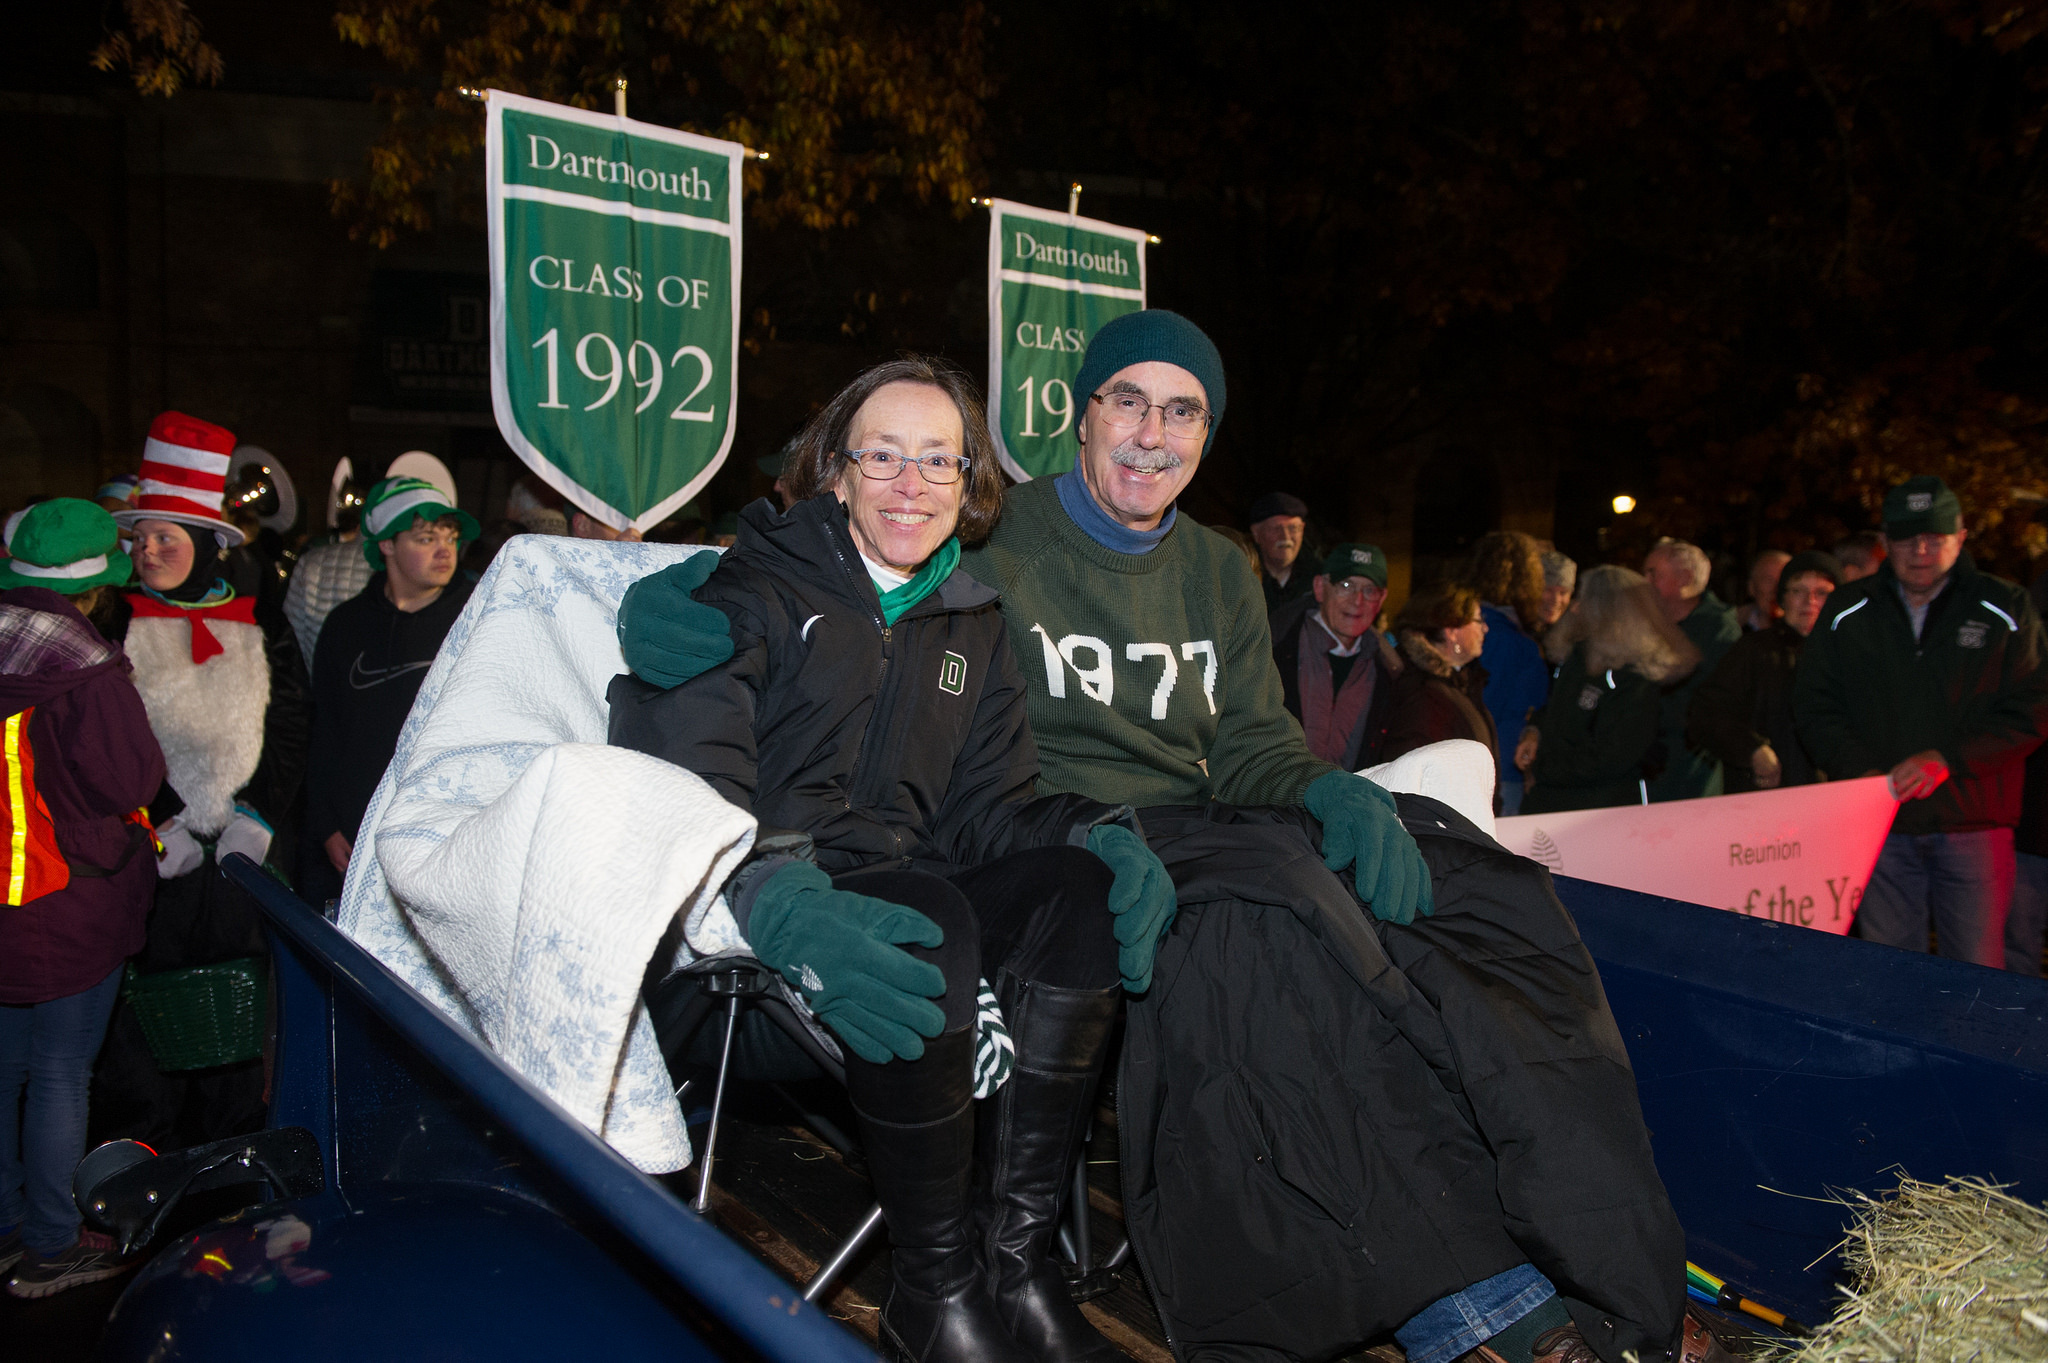 Gail and Phil Hanlon in Parade